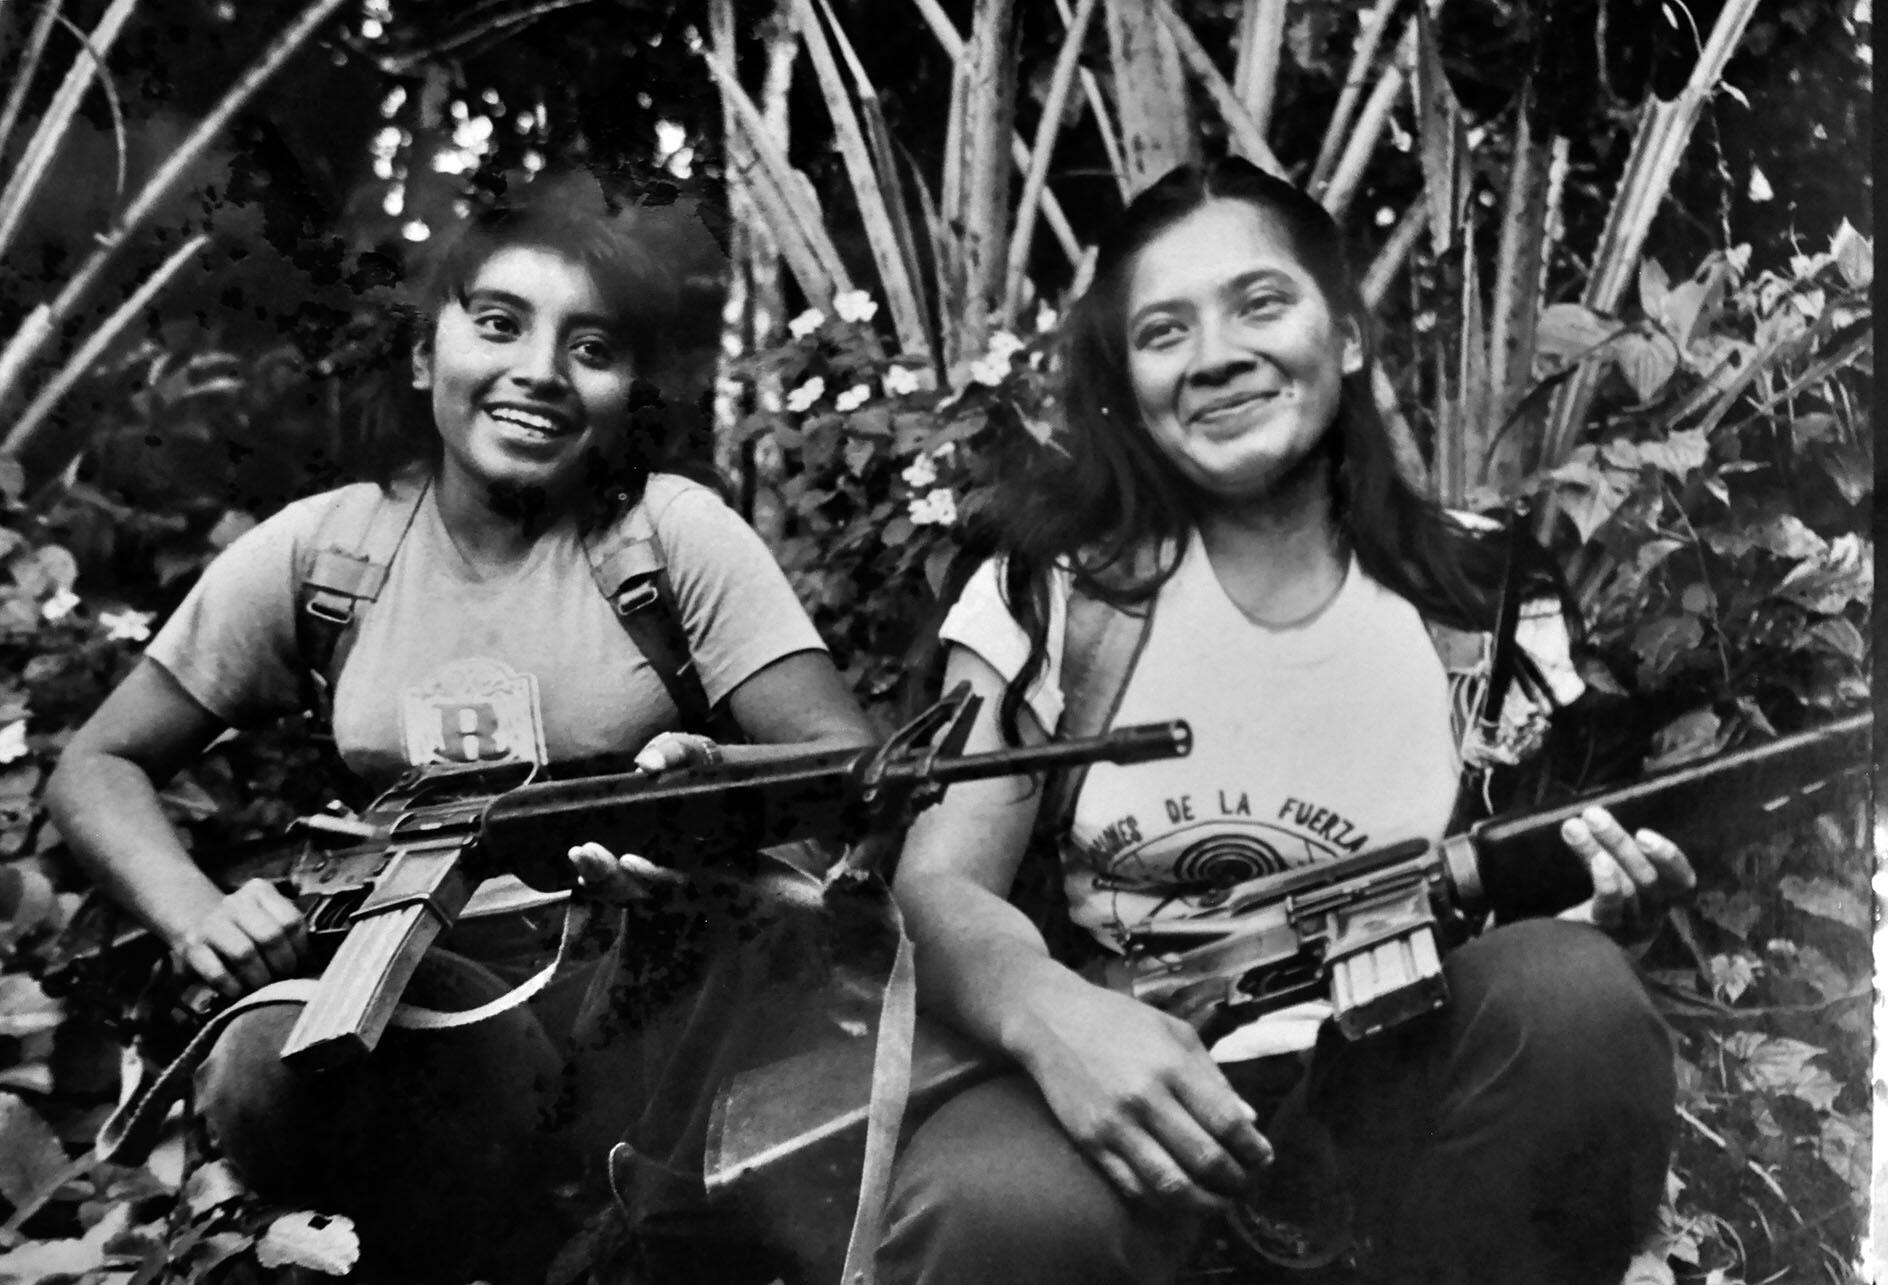 Two women Farabundo Martí National Liberation Front (FMLN) fighters holding guns smile at being photographed. (Photo courtesy of the Museo de la Revolucion, Perquin, El Salvador.)